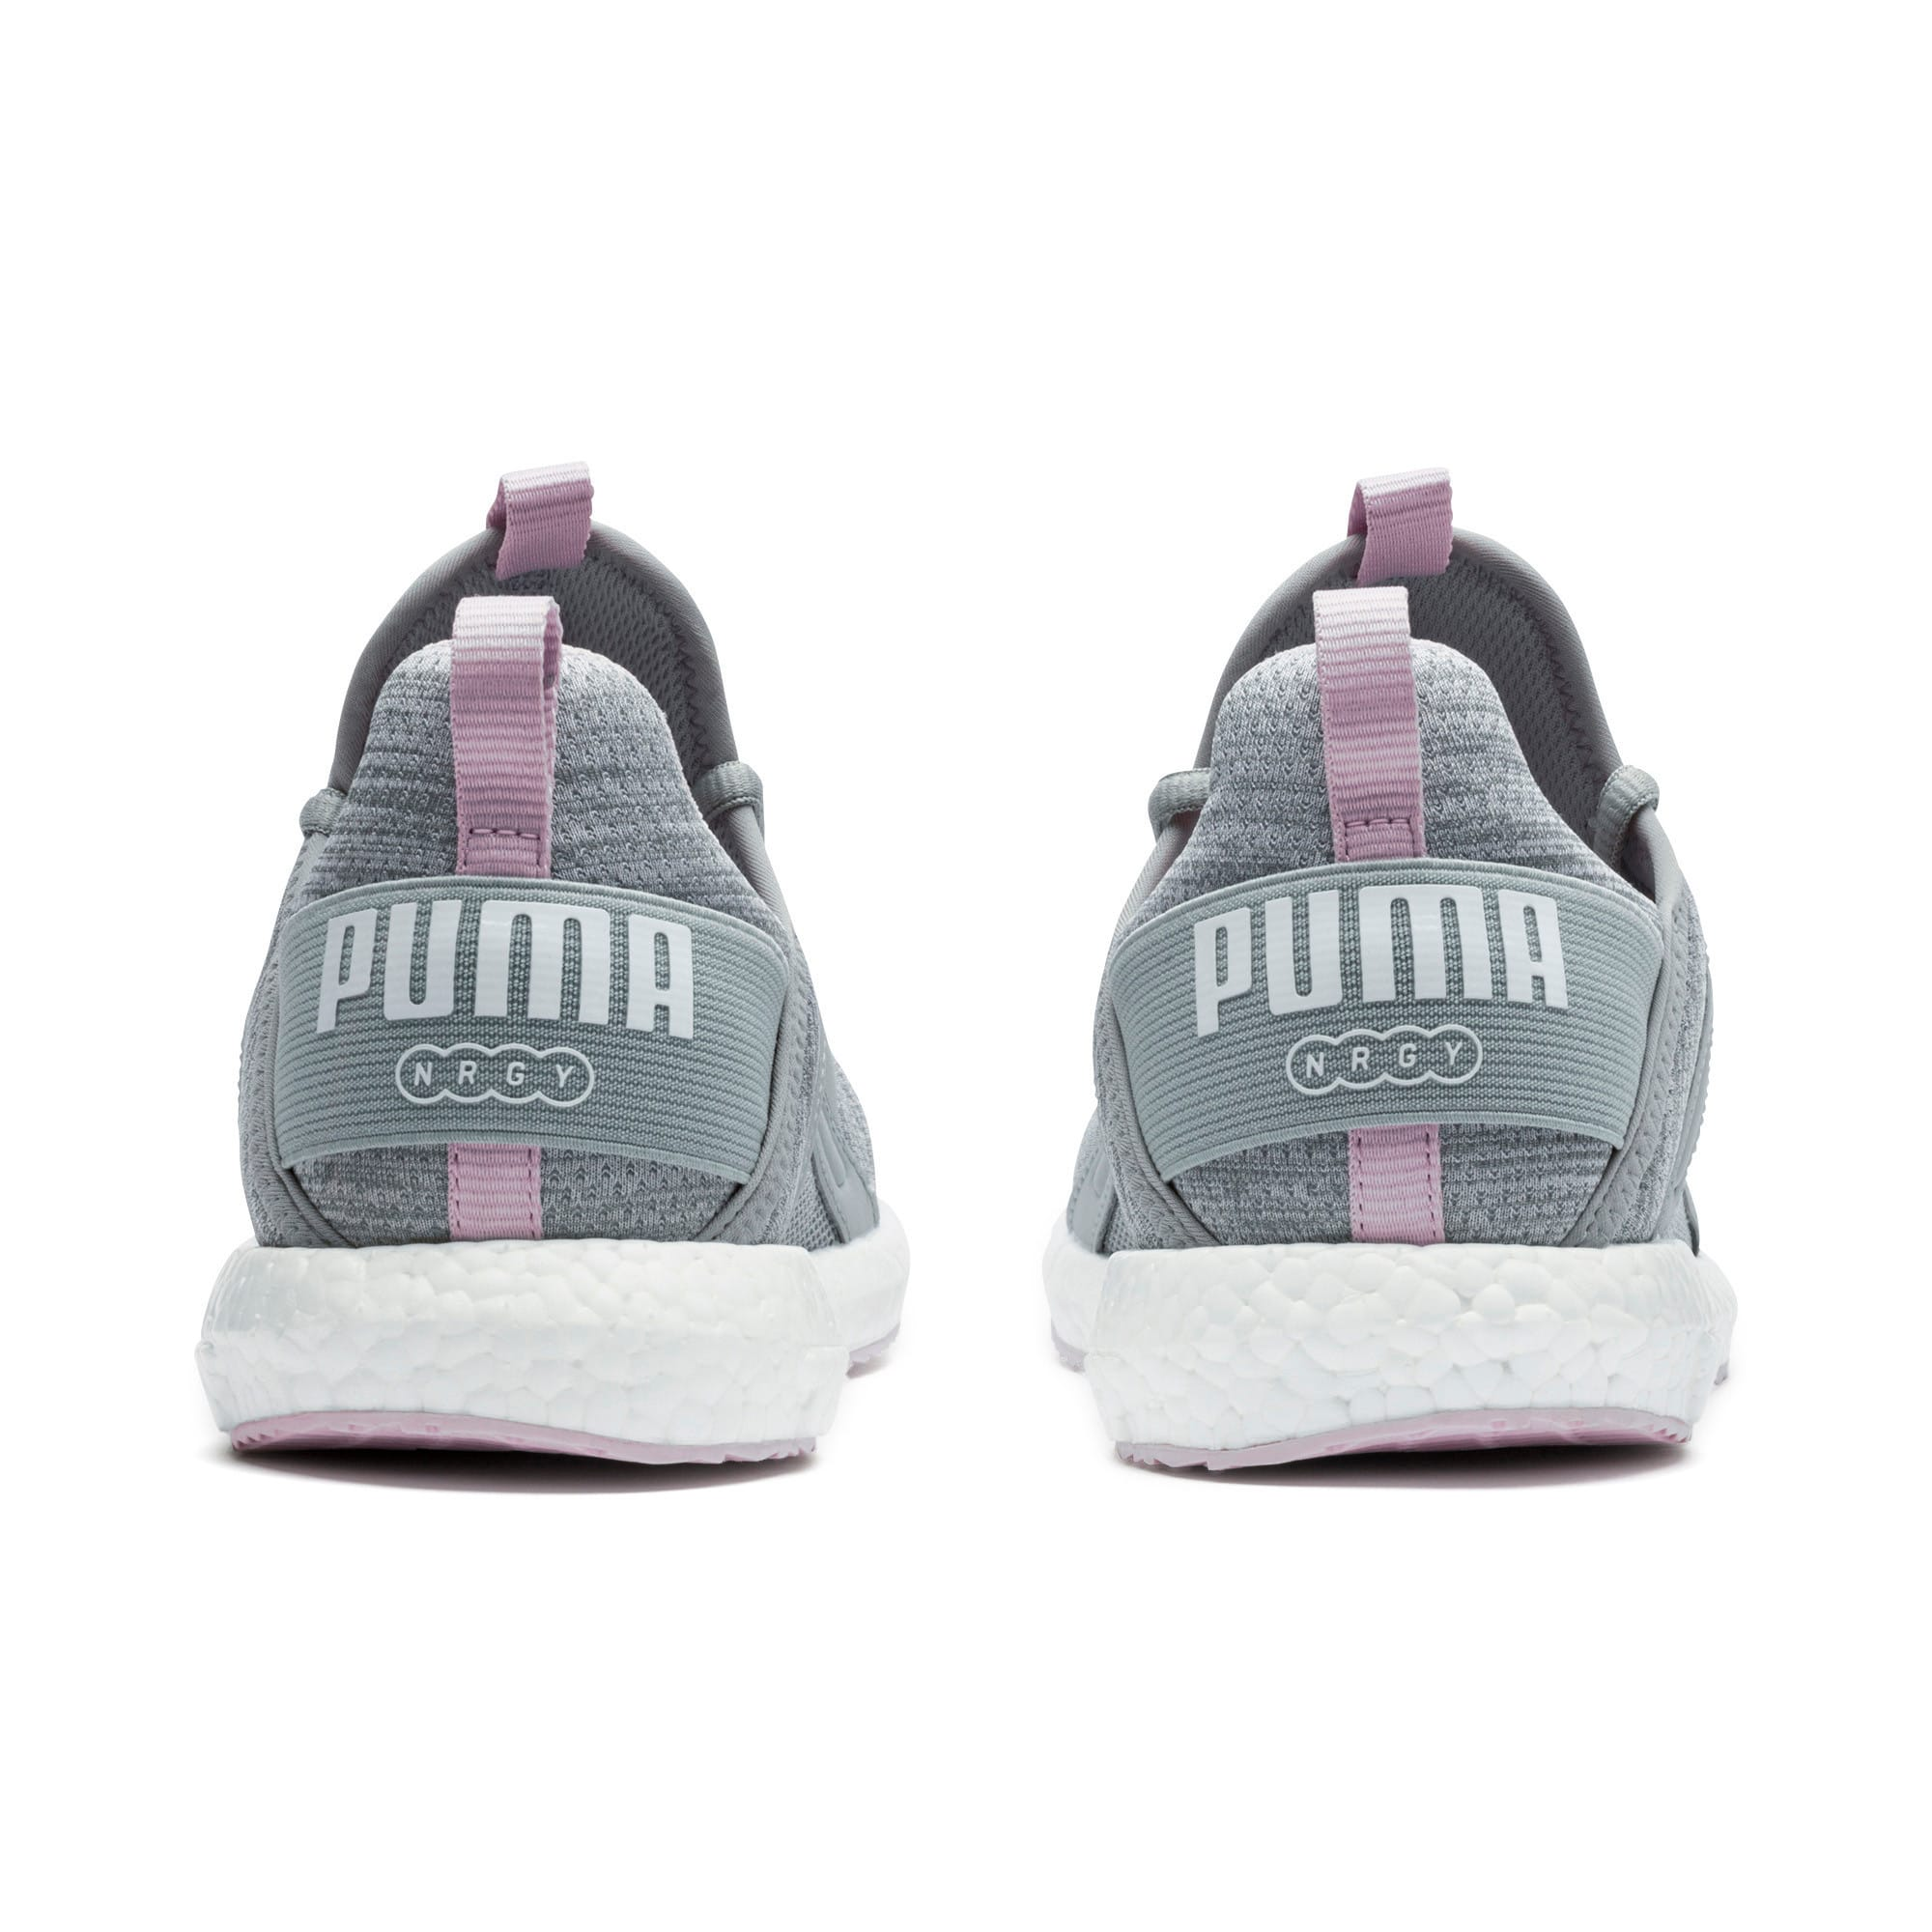 Thumbnail 2 of Mega Energy Heather Knit Women's Running Shoes, Quarry-Winsome Orchid-White, medium-IND